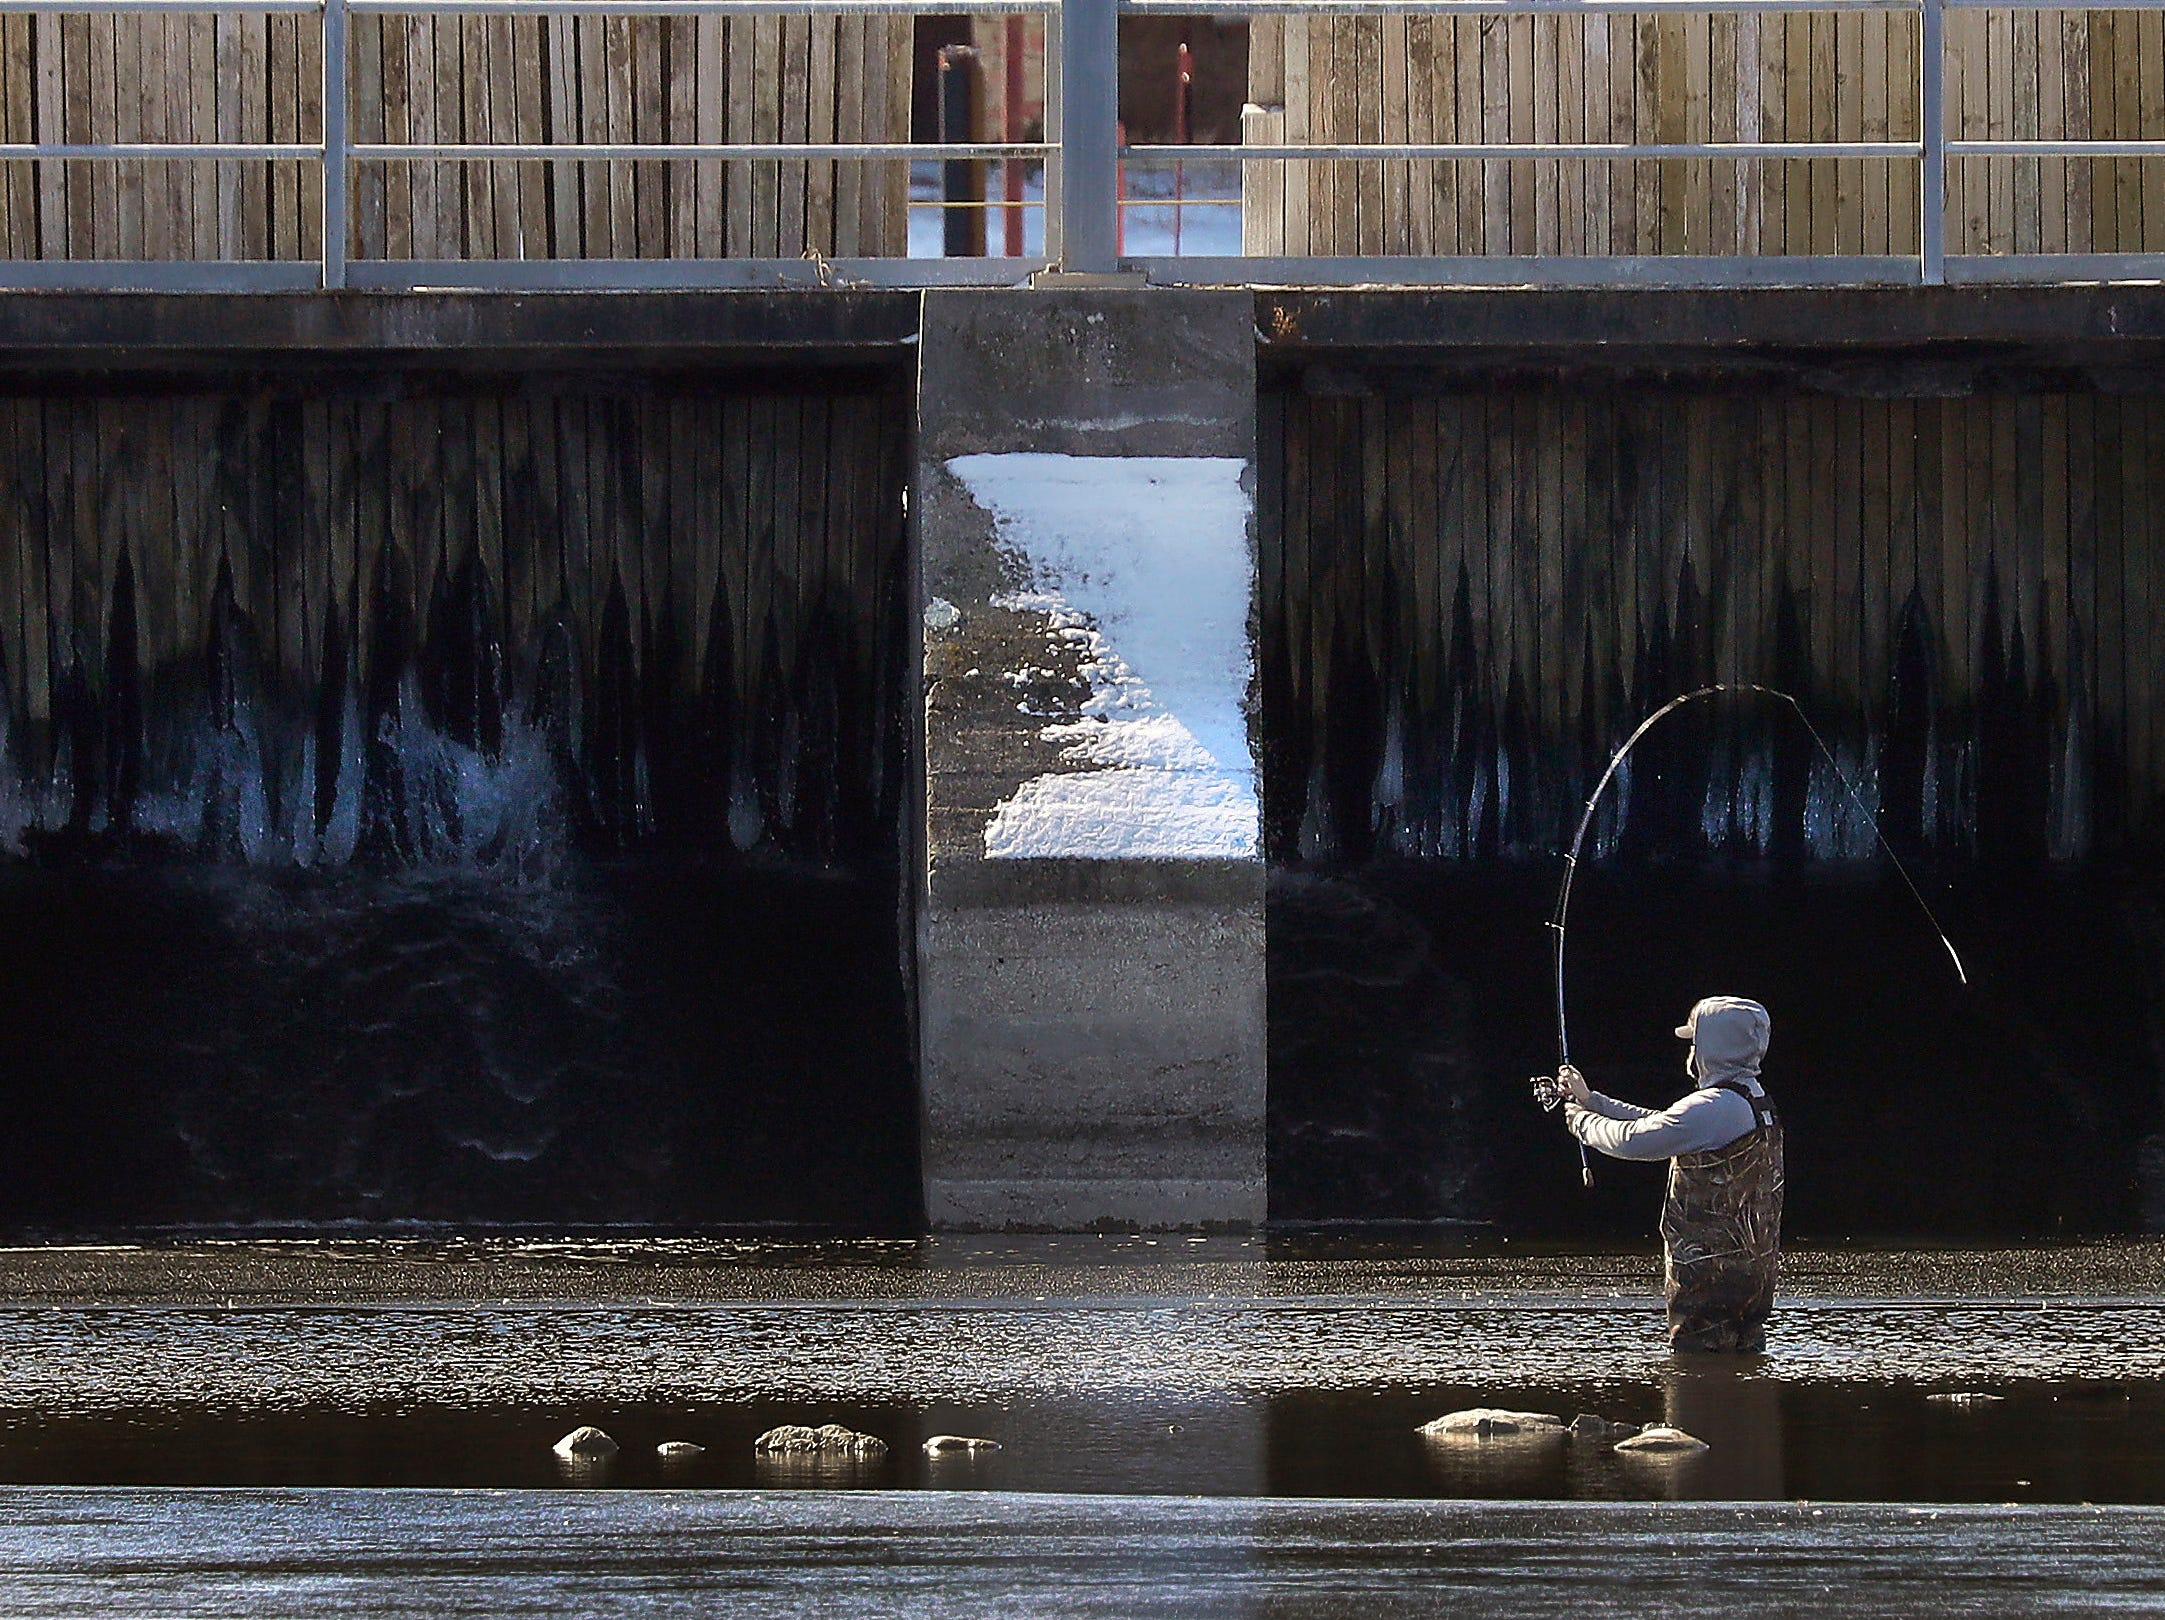 A man braves the cold water while fishing near the WG Bryan bridge on Thursday March 8, 2018 in Neenah, Wis. 